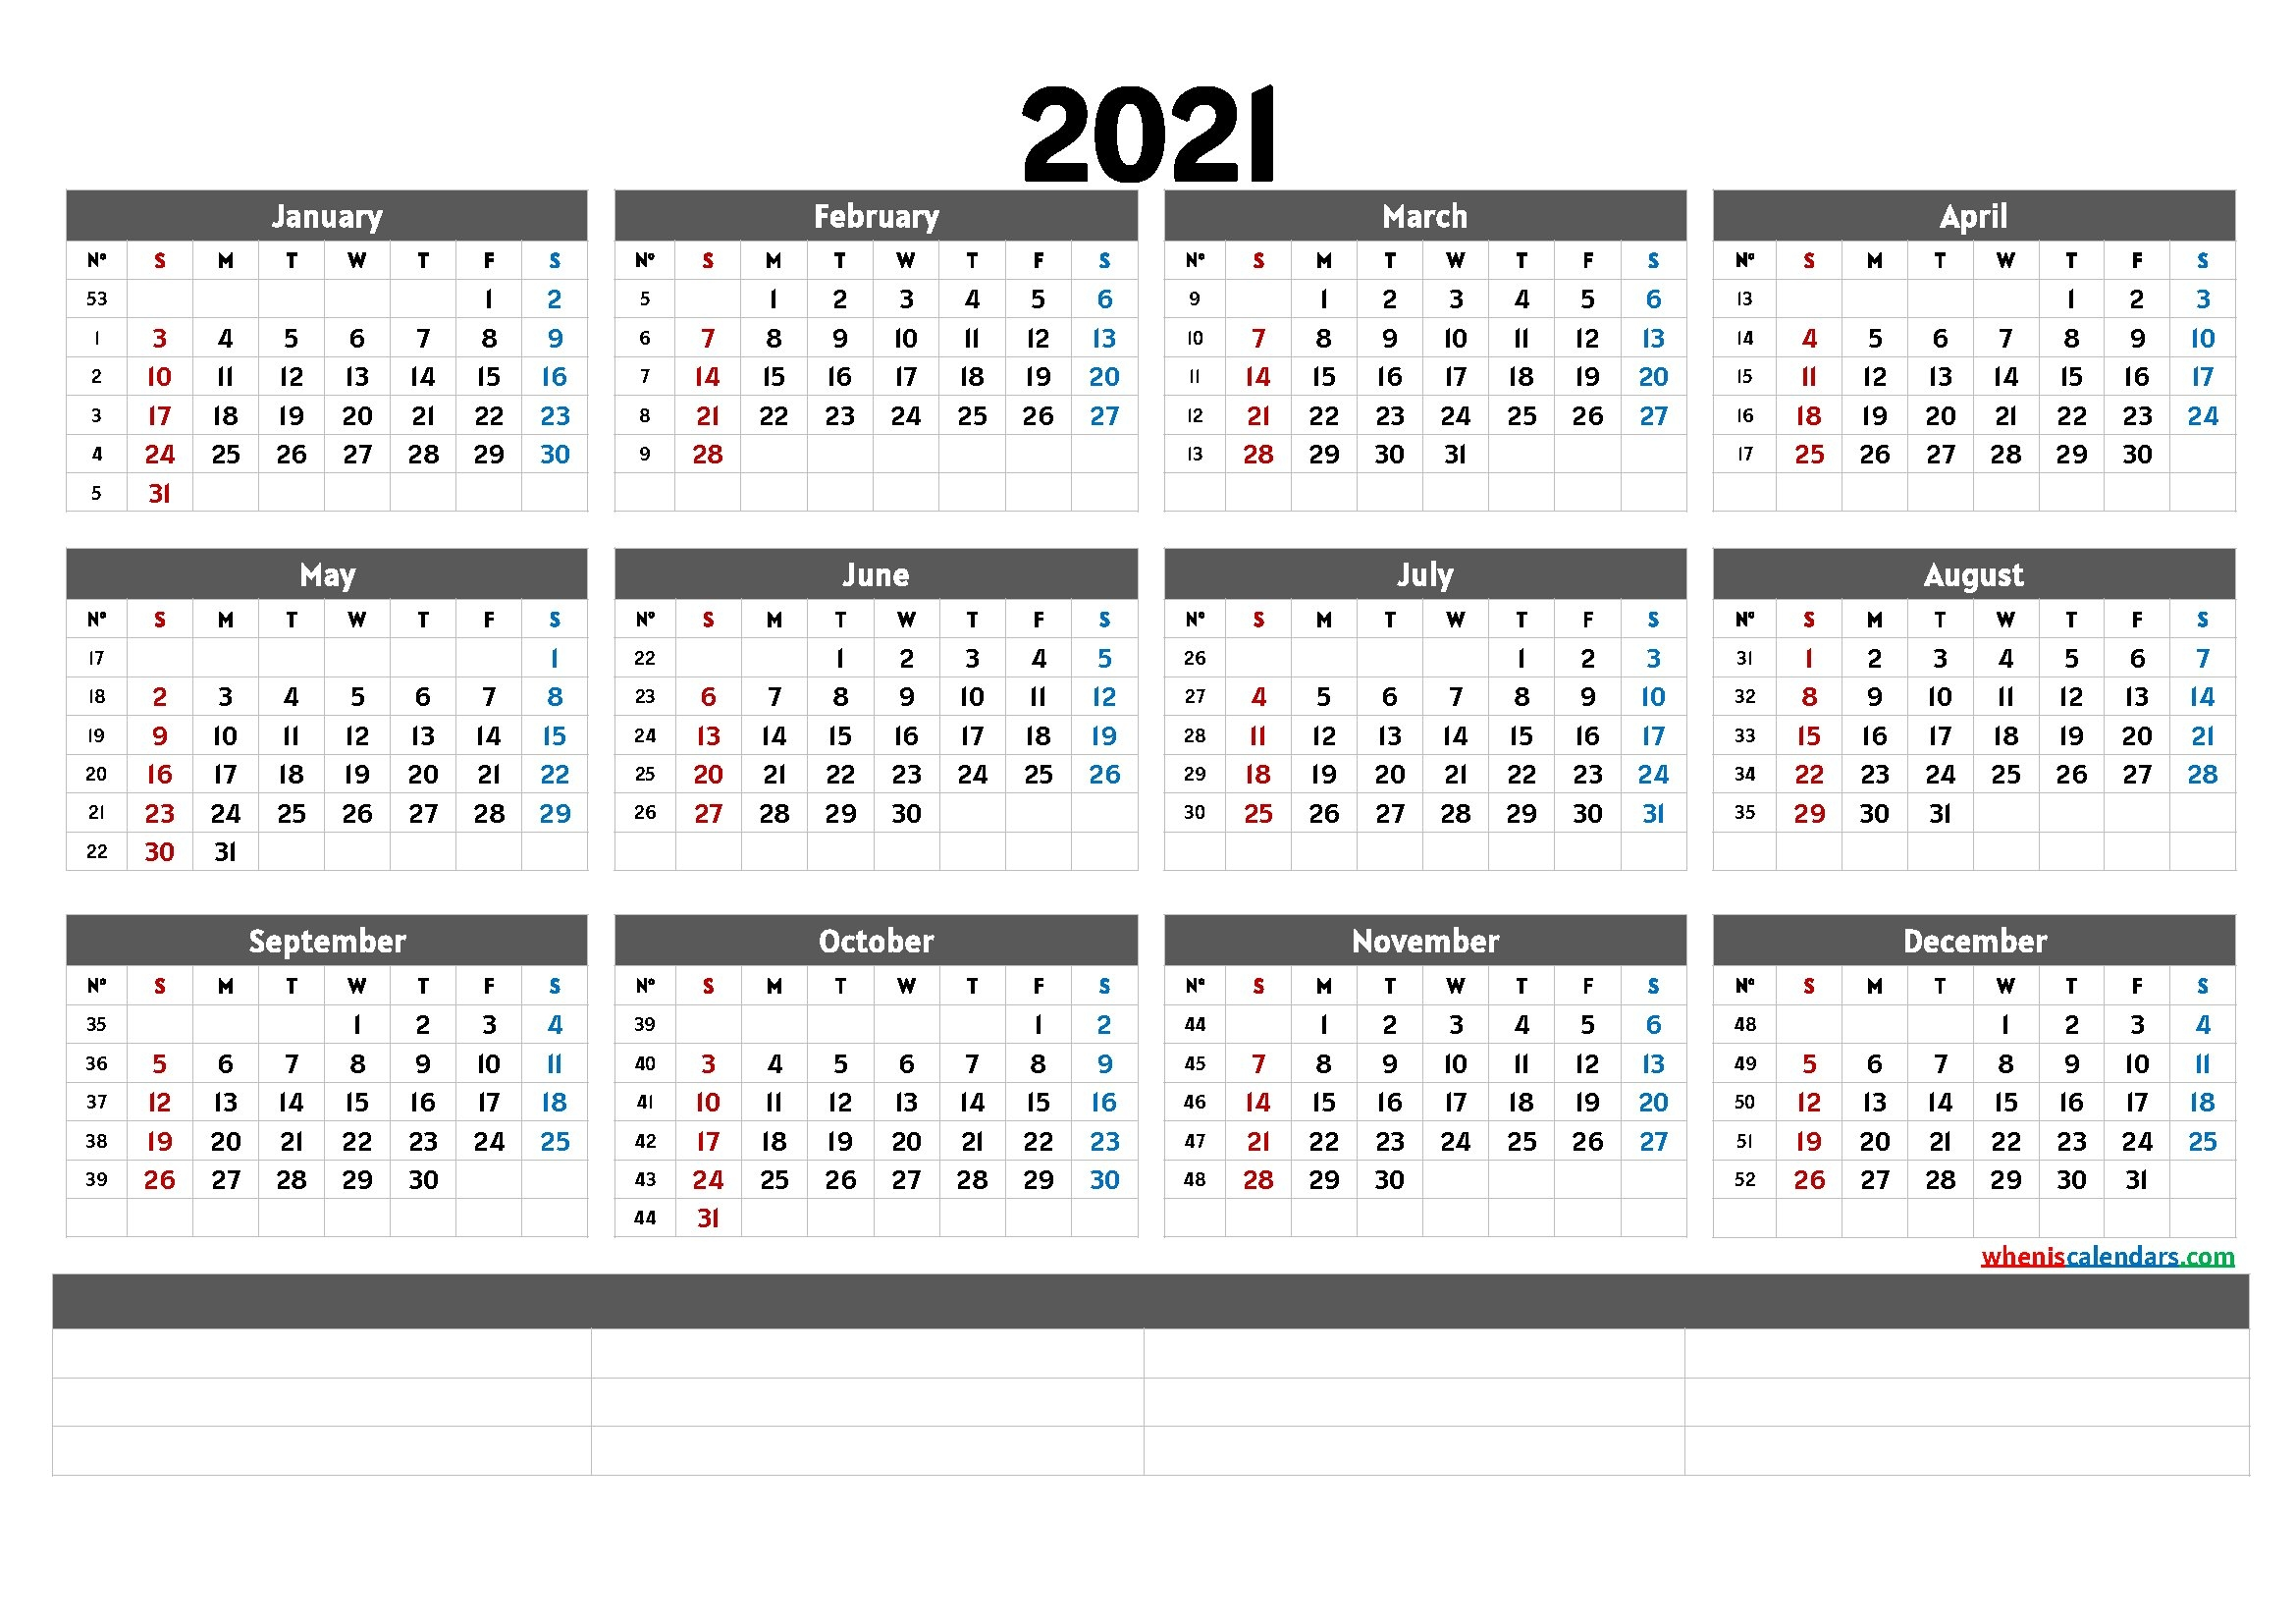 Free Printable 2021 Yearly Calendar With Week Numbers (6 Templates) pertaining to Calendar For Year 2021 With Weeks Numbered